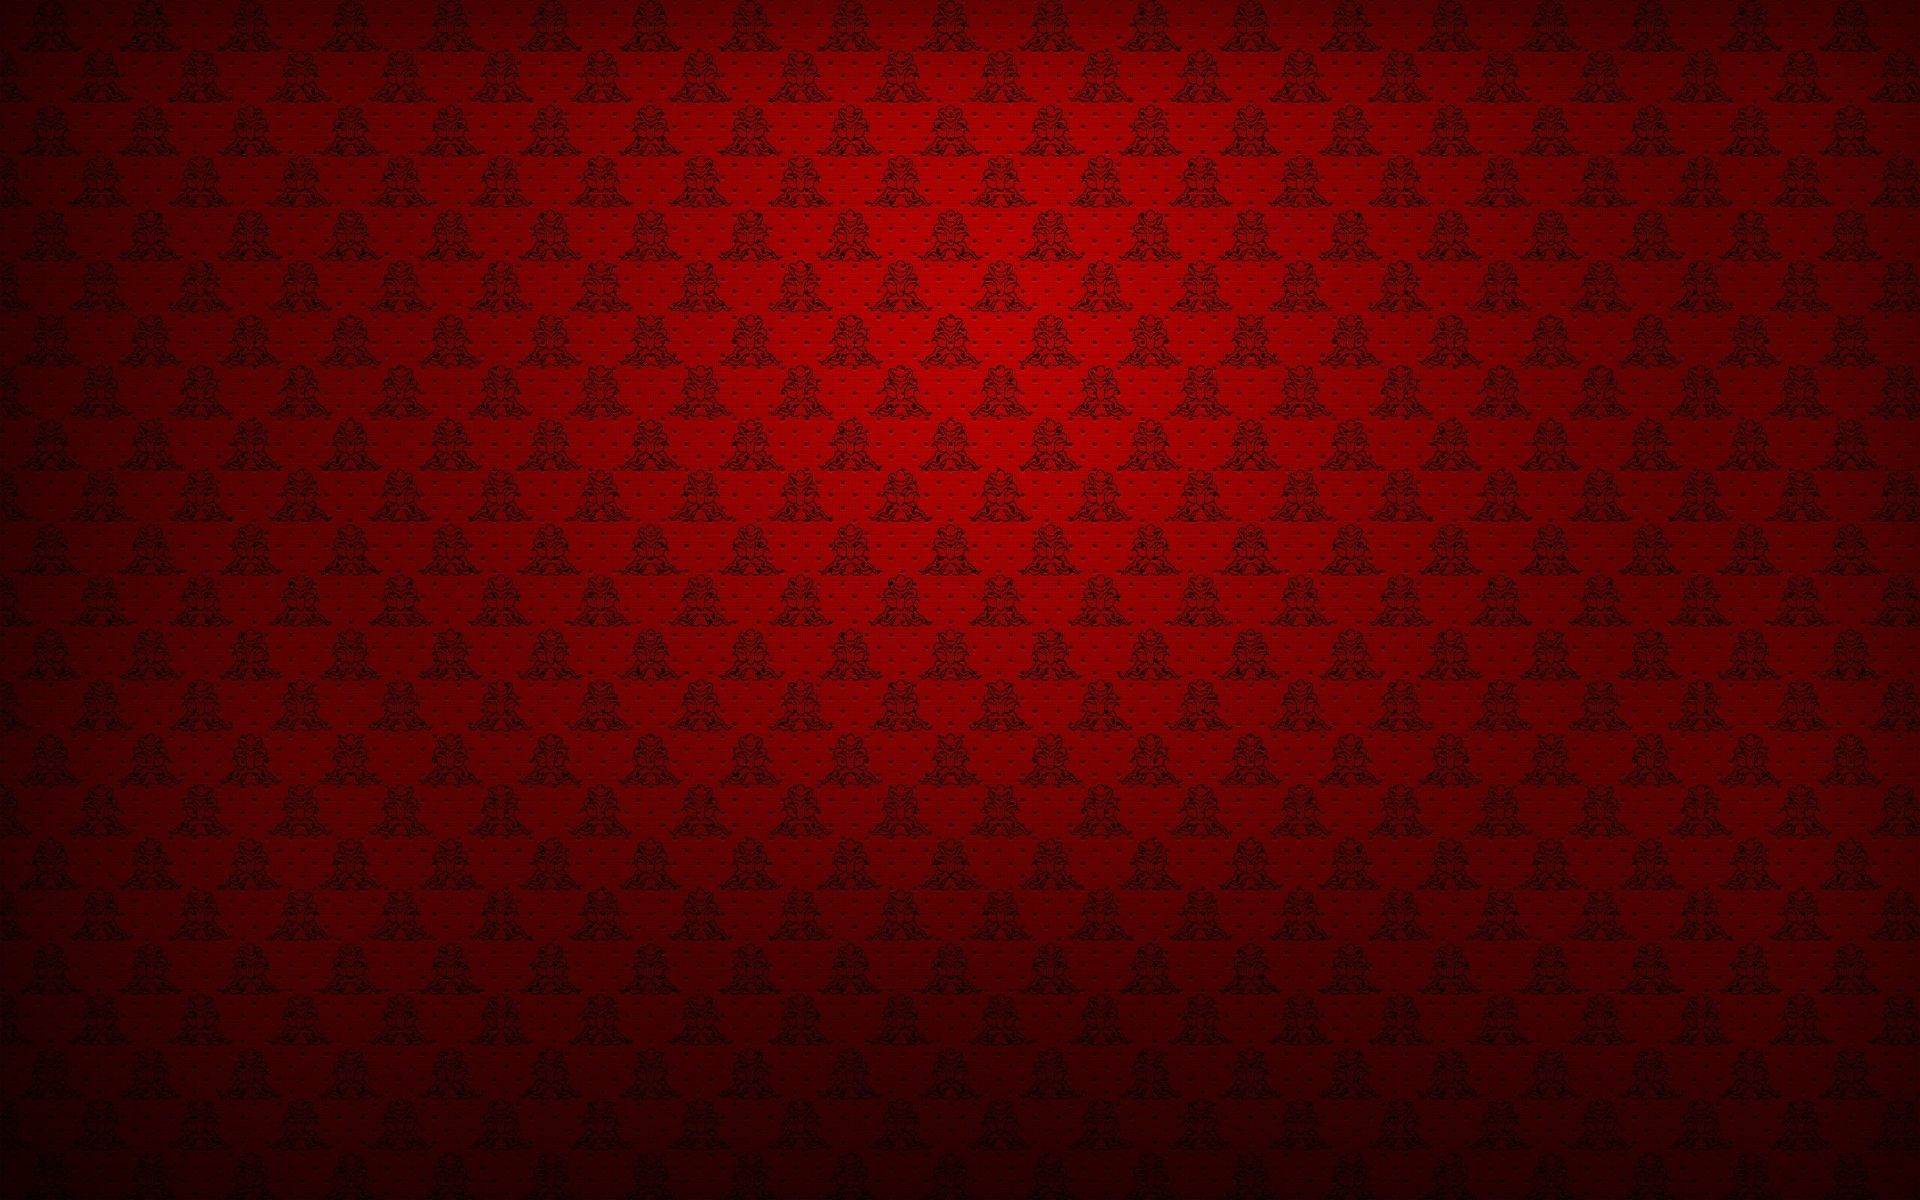 Dark Red Pattern Iphone Wallpapers High Quality 1920x1200 Px 49633 KB